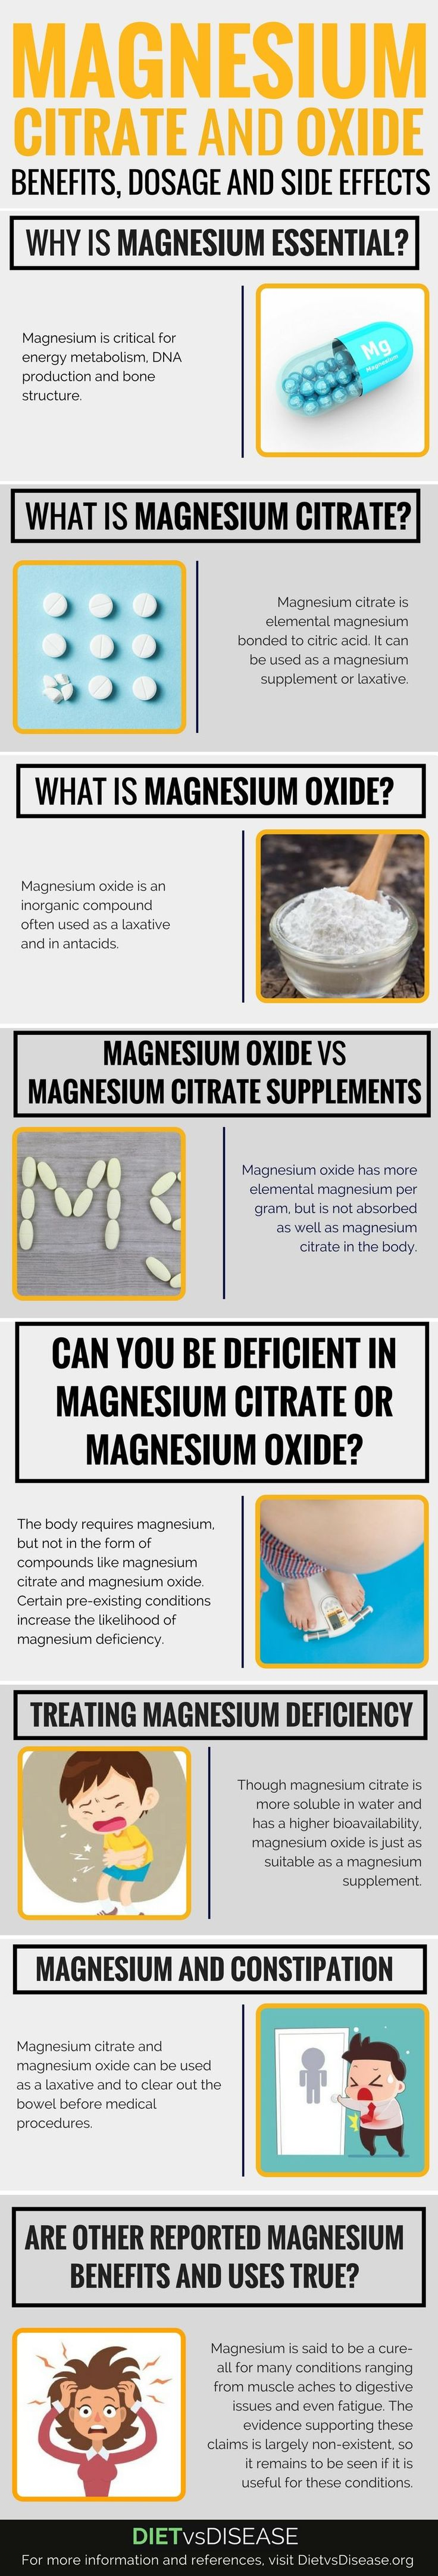 Magnesium is an essential mineral thought to several potential health benefits.This ranges from improving energy levels to treating constipation.This article explores the uses and possible side effects of the most common forms, magnesium citrate and magnesium oxide. #dietitian #nutritionist #nutrition #magnesium #supplements